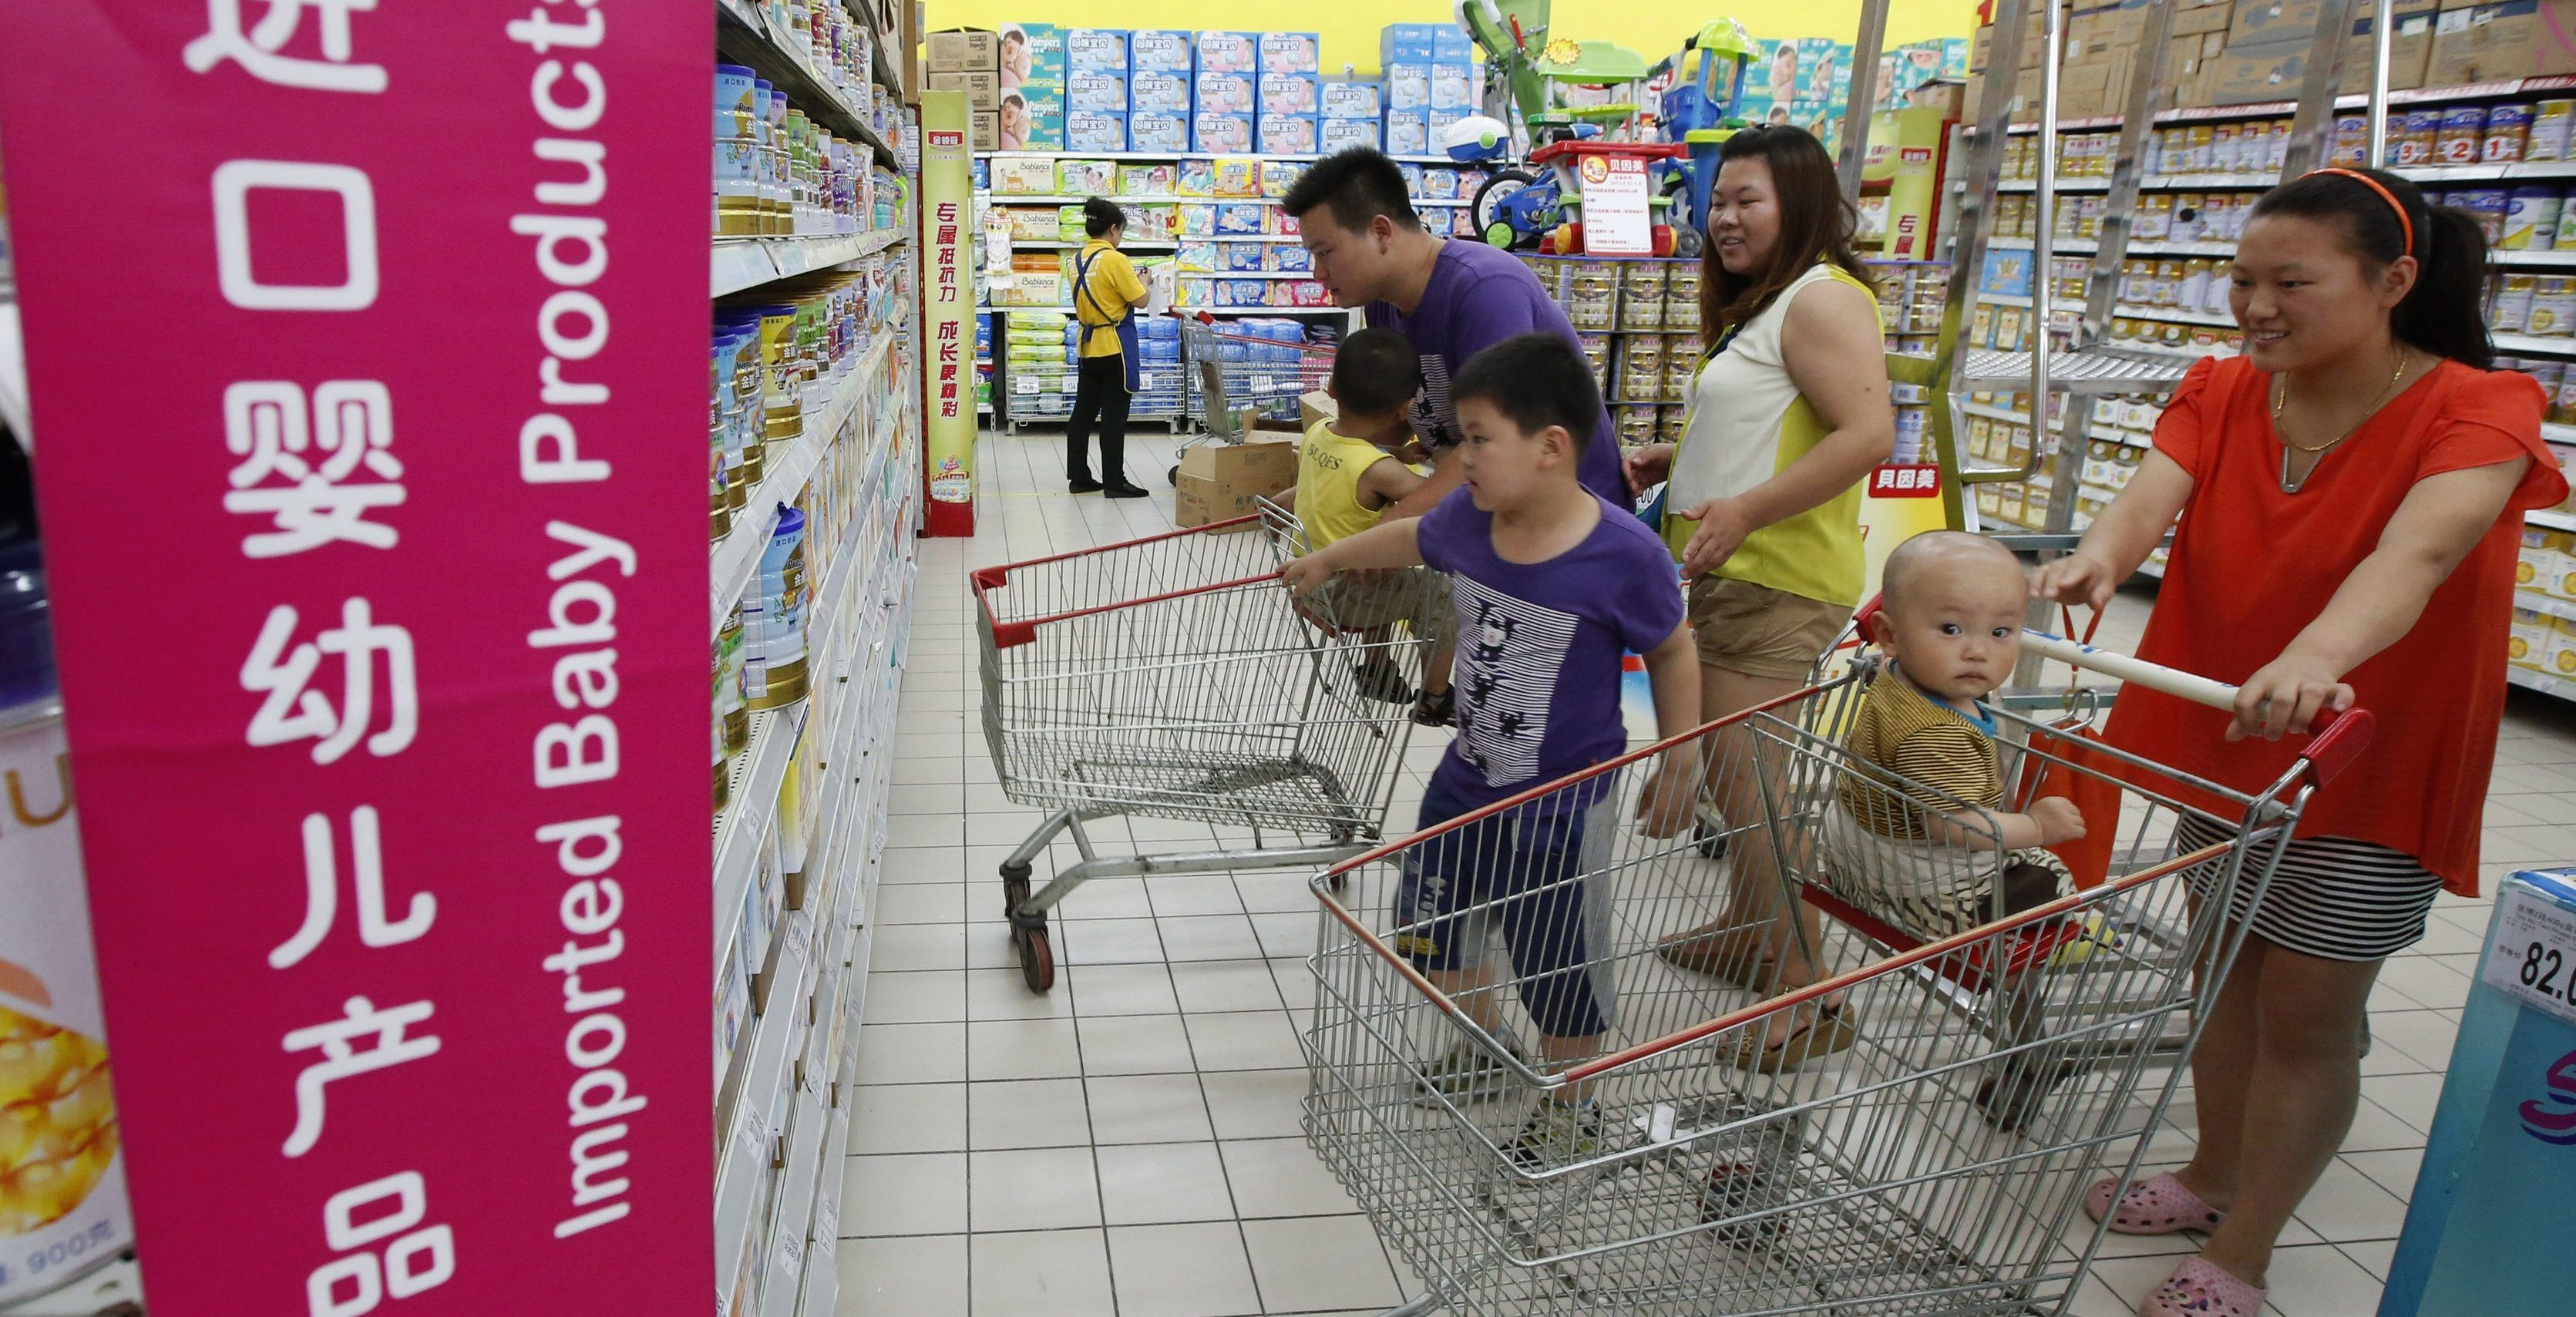 A family looks at foreign imported milk powder products at a supermarket in Beijing July 3, 2013. The decision by China's top economic planner to investigate five leading foreign infant milk companies for suspected antitrust violations may be part of a broader plan to boost consumption of the local product, analysts said on Wednesday. Mothers turned away from Chinese milk powder in 2008 when infant formula tainted with the industrial compound melamine killed at least six babies and made thousands sick with kidney stones.